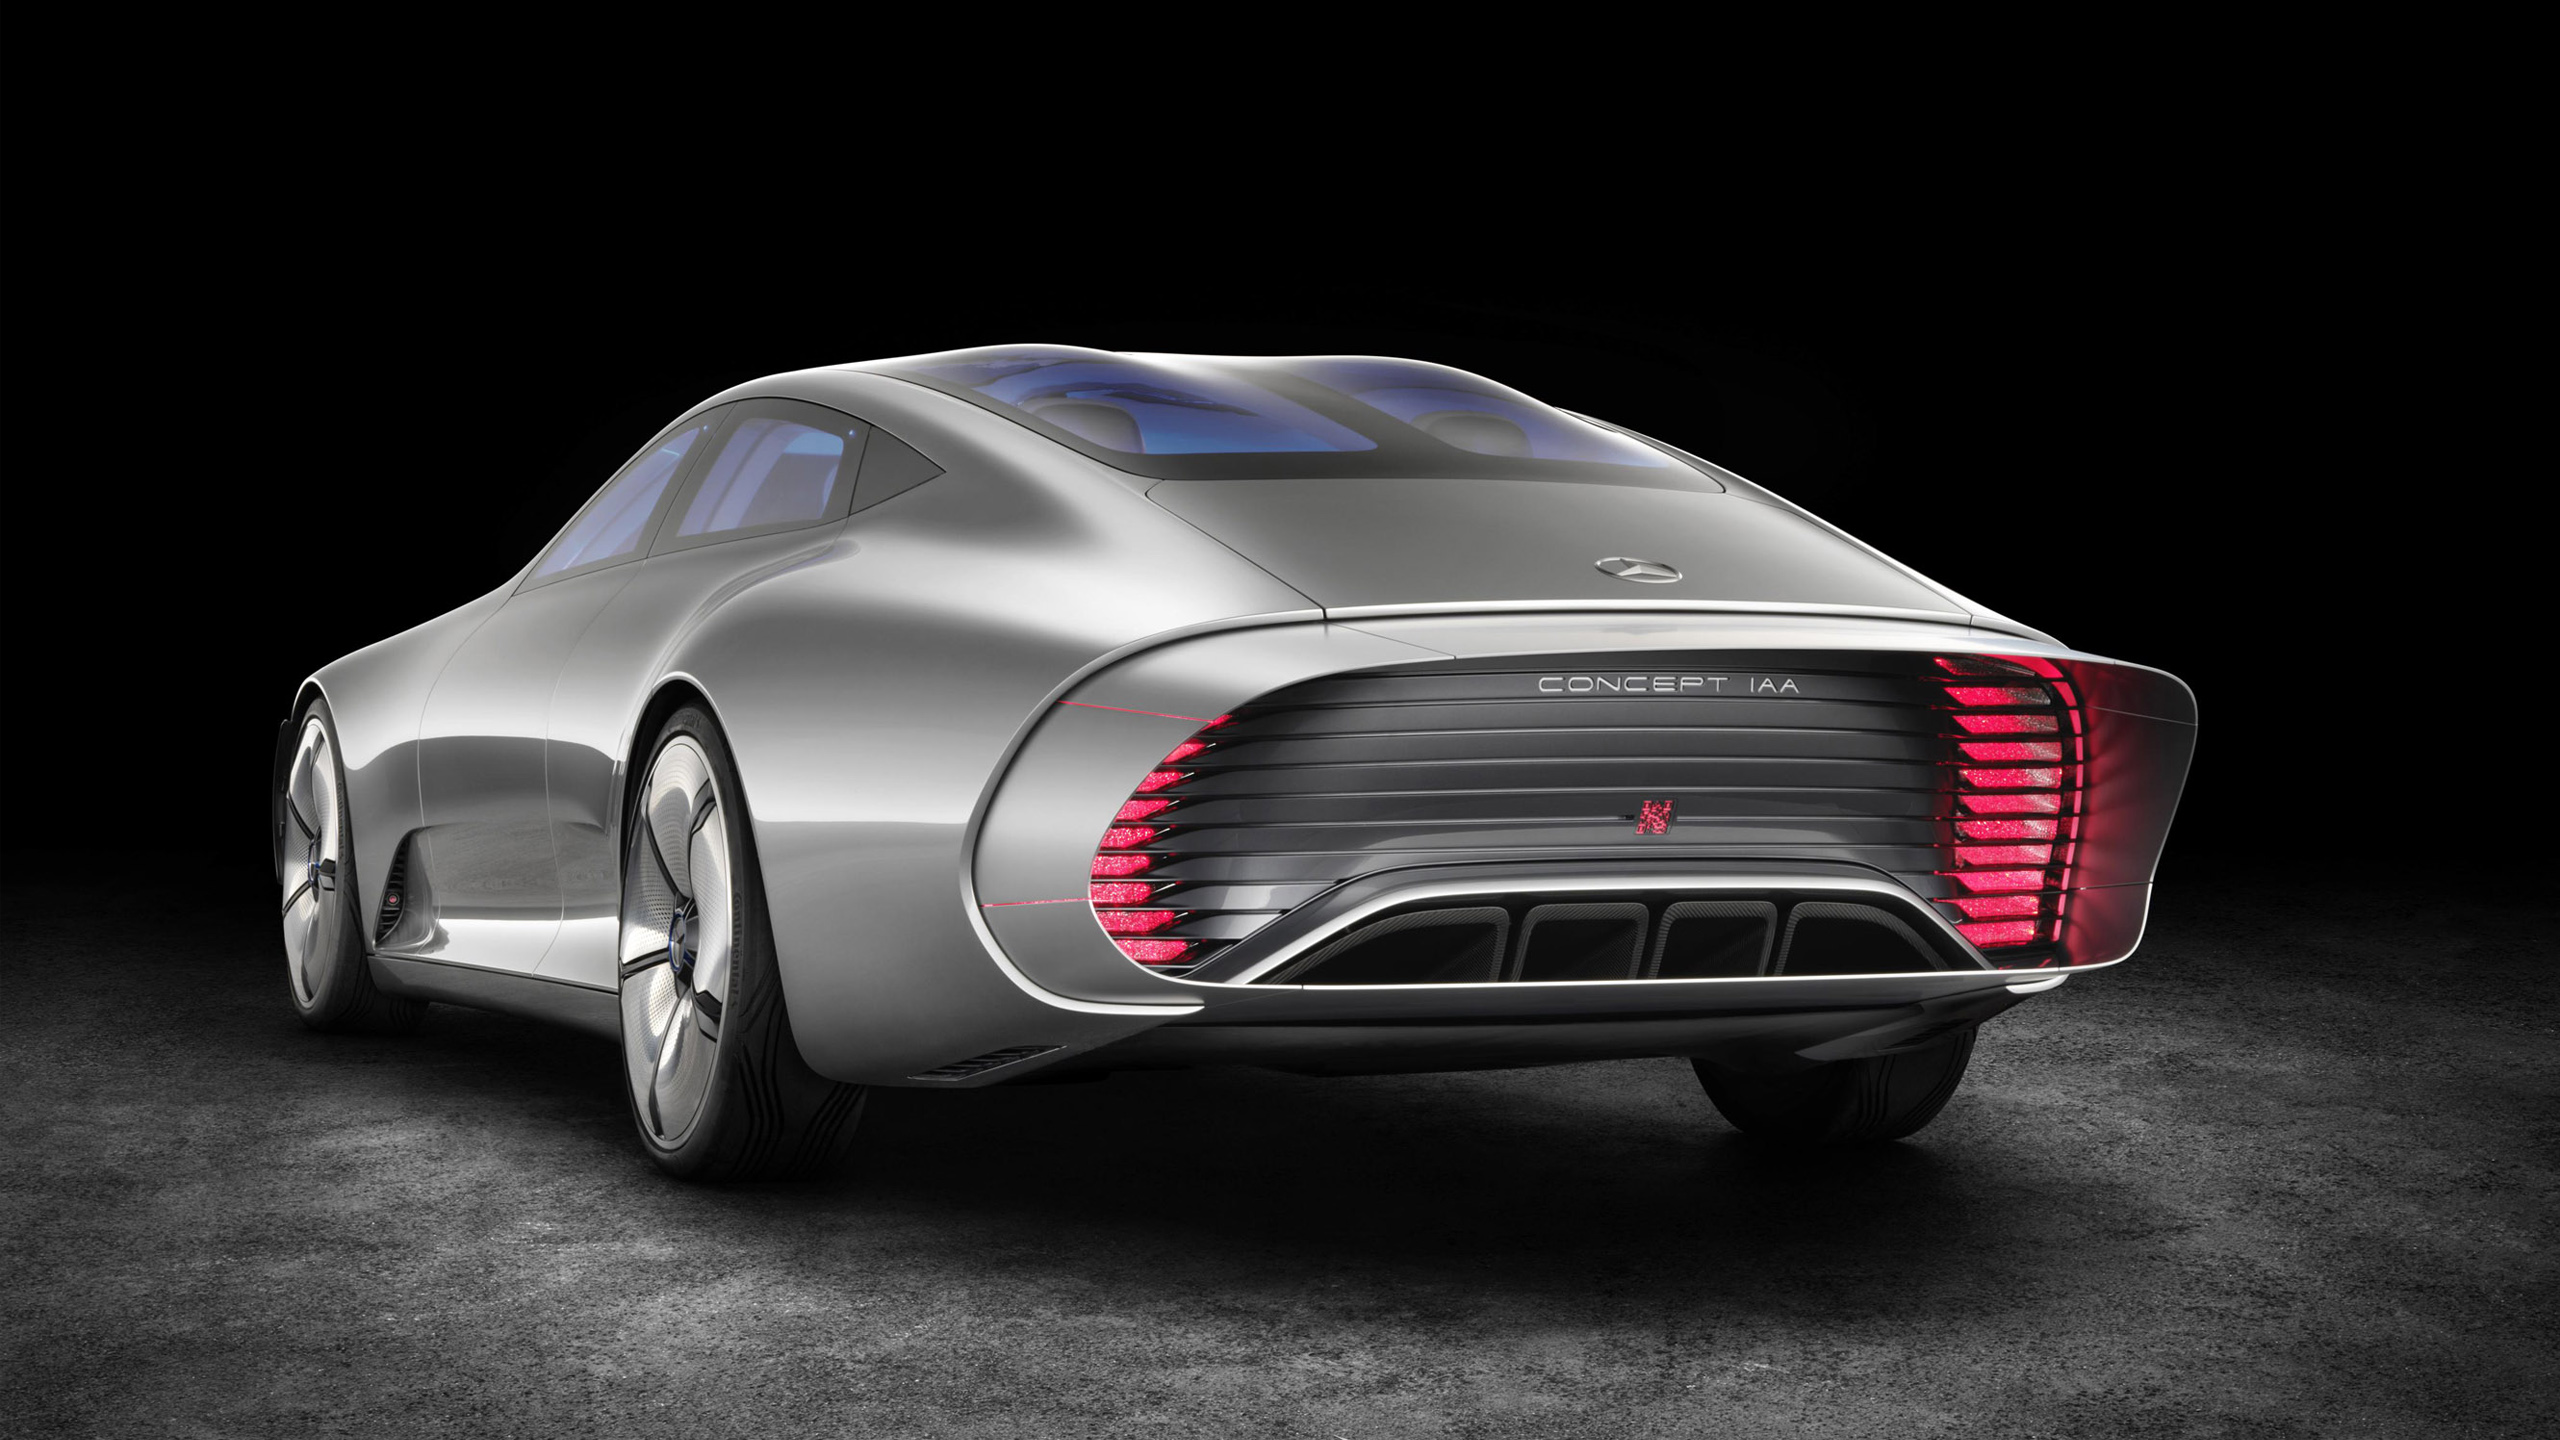 2016 mercedes benz concept iaa 4 wallpaper hd car for Mercedes benz cars images